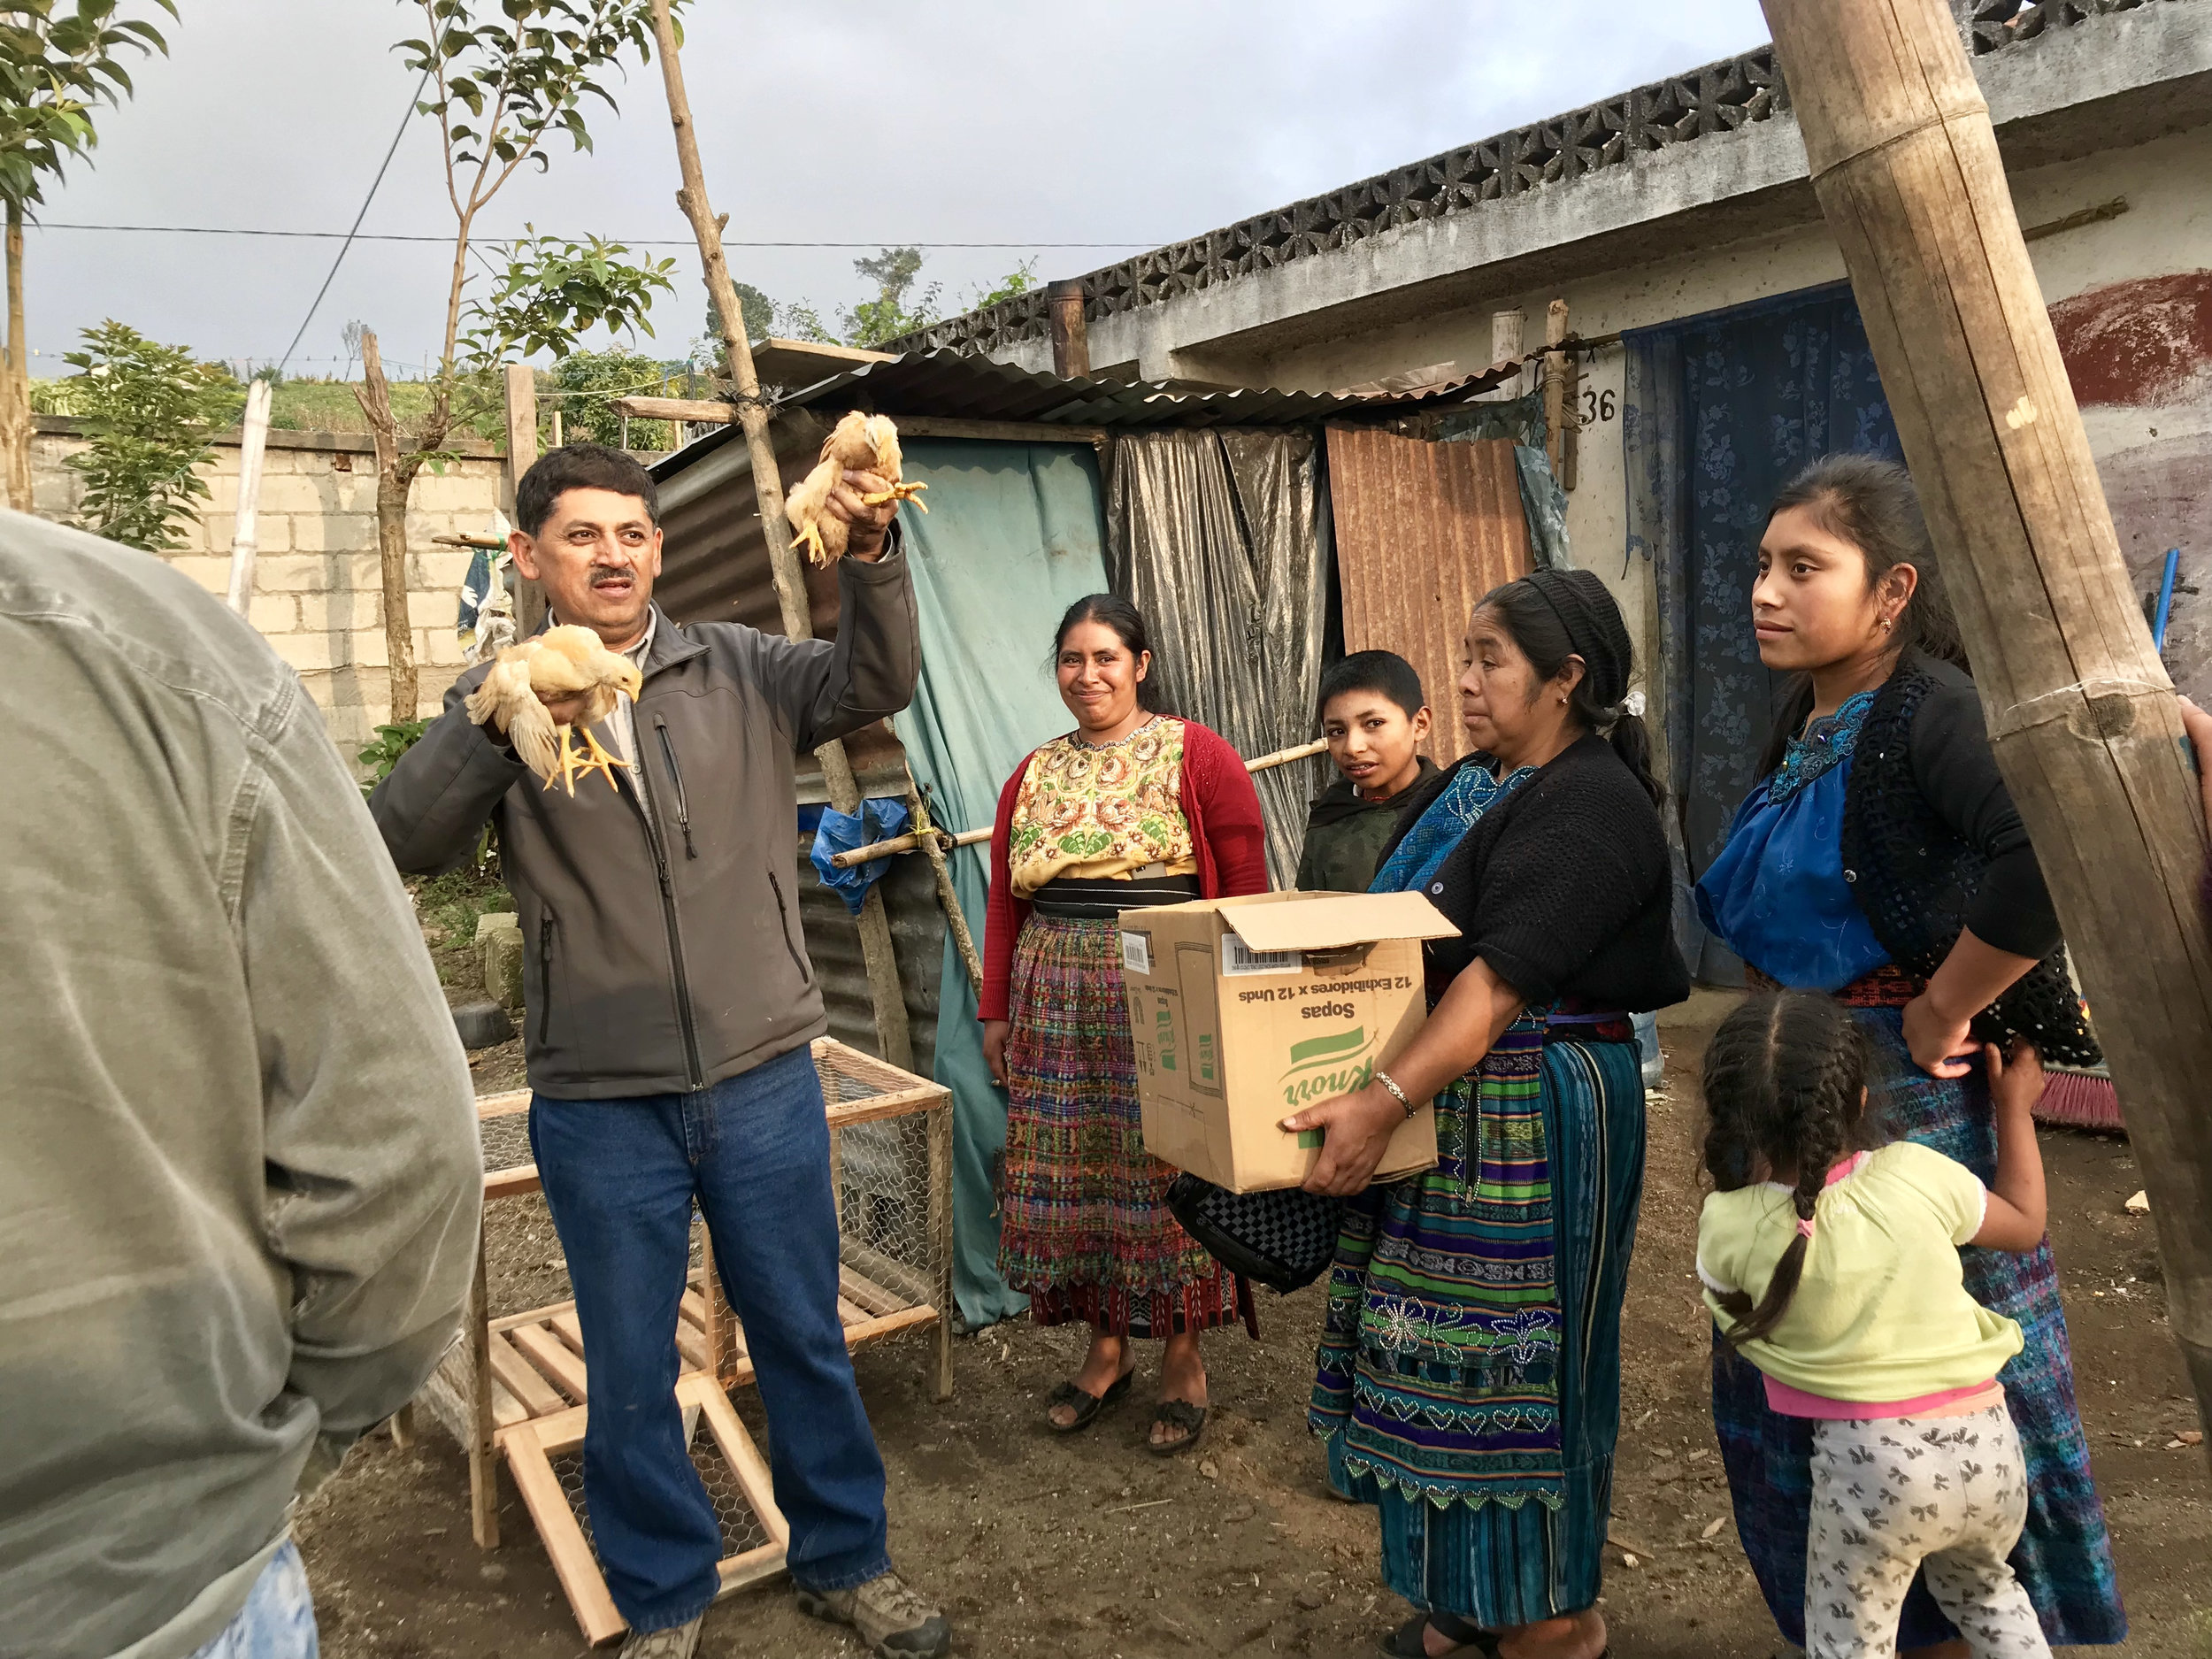 Luiz, Guatemalan Operations Manager, helping deliver the coops and chickens.